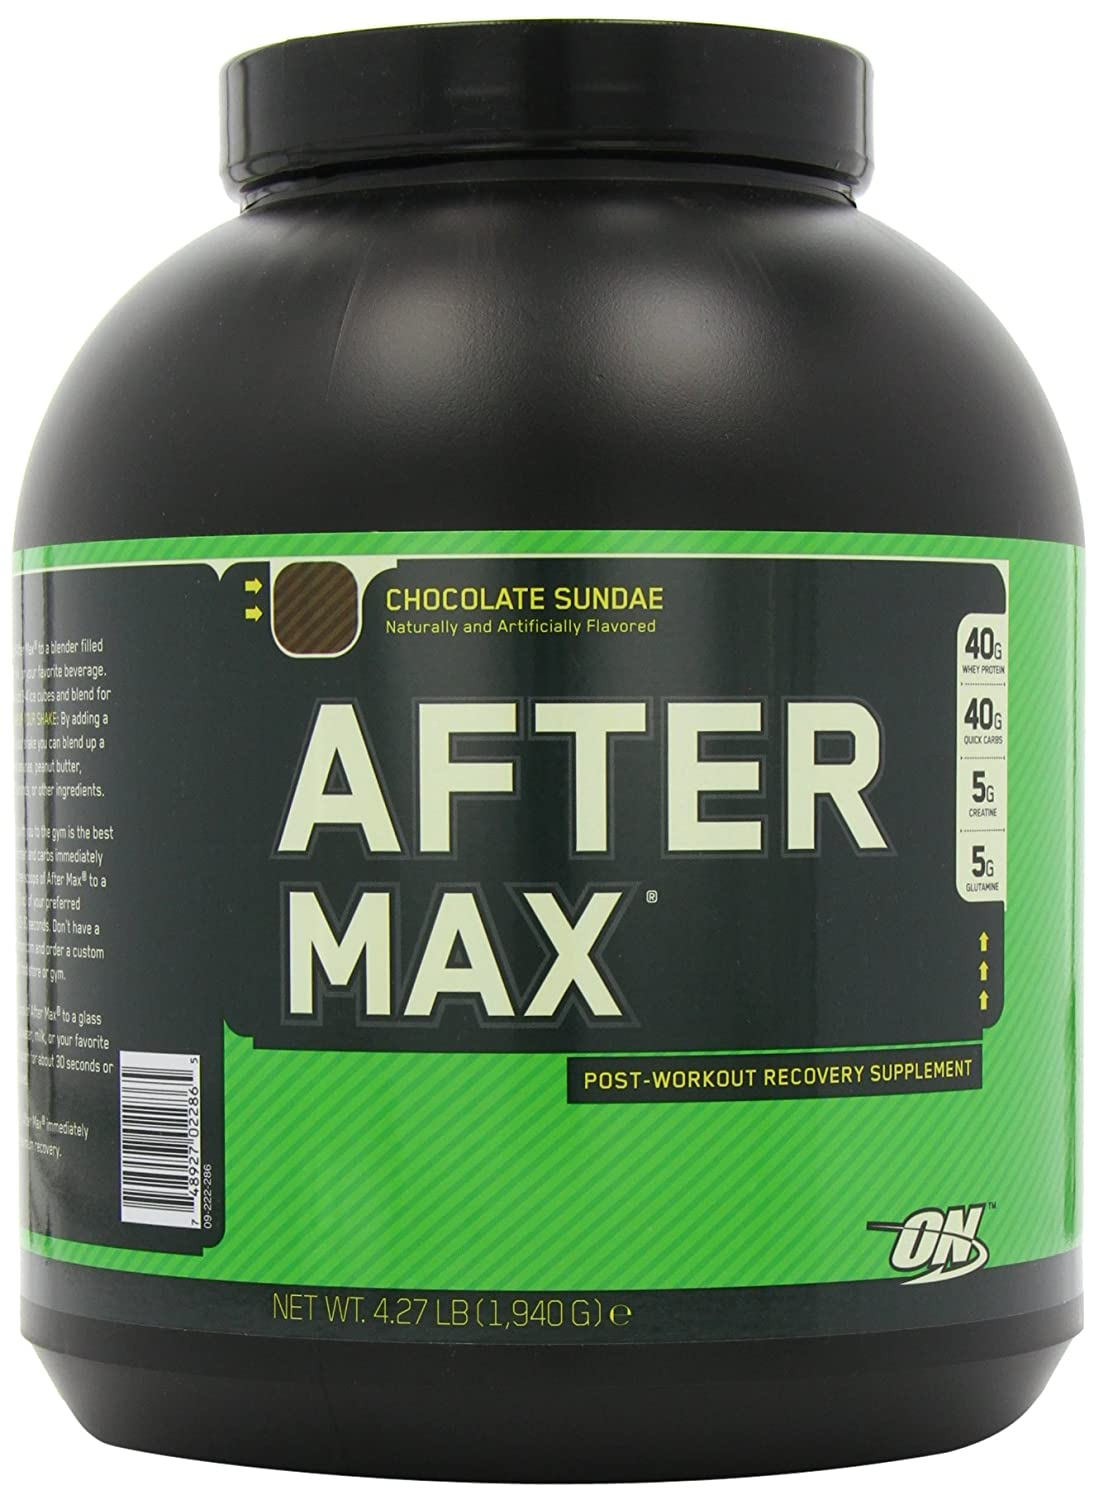 Amazon.com: Optimum Nutrition After Max Post-Workout Maximum Recovery, Chocolate Sundae, 4.27 Pound: Health & Personal Care